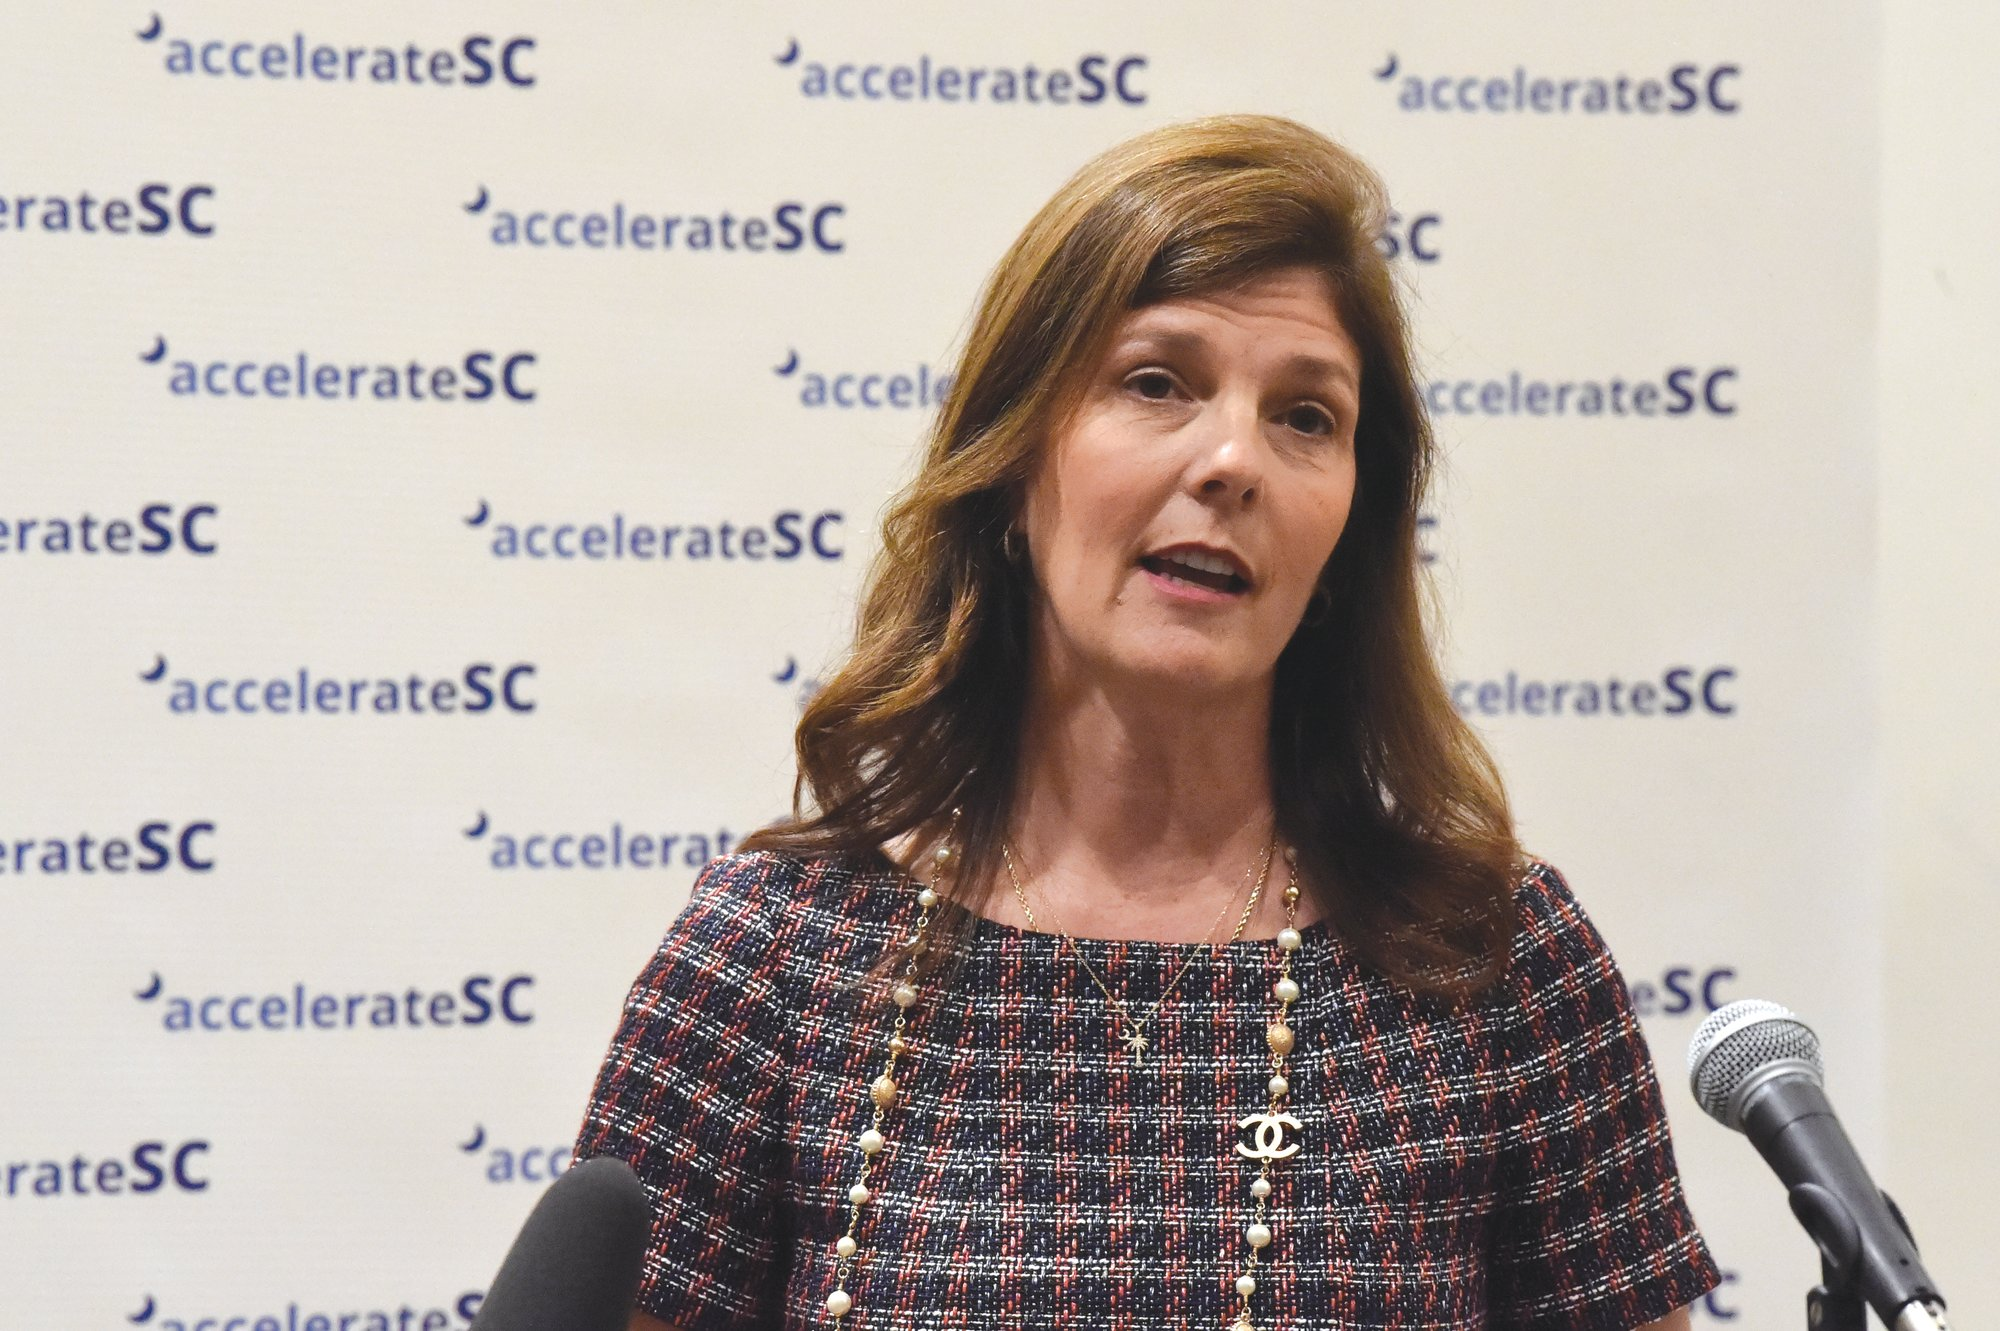 South Carolina Lt. Gov. Pamela Evette speaks with reporters after the first meeting of accelerateSC on April 23 in   Columbia. She was diagnosed with COVID-19 on Friday.